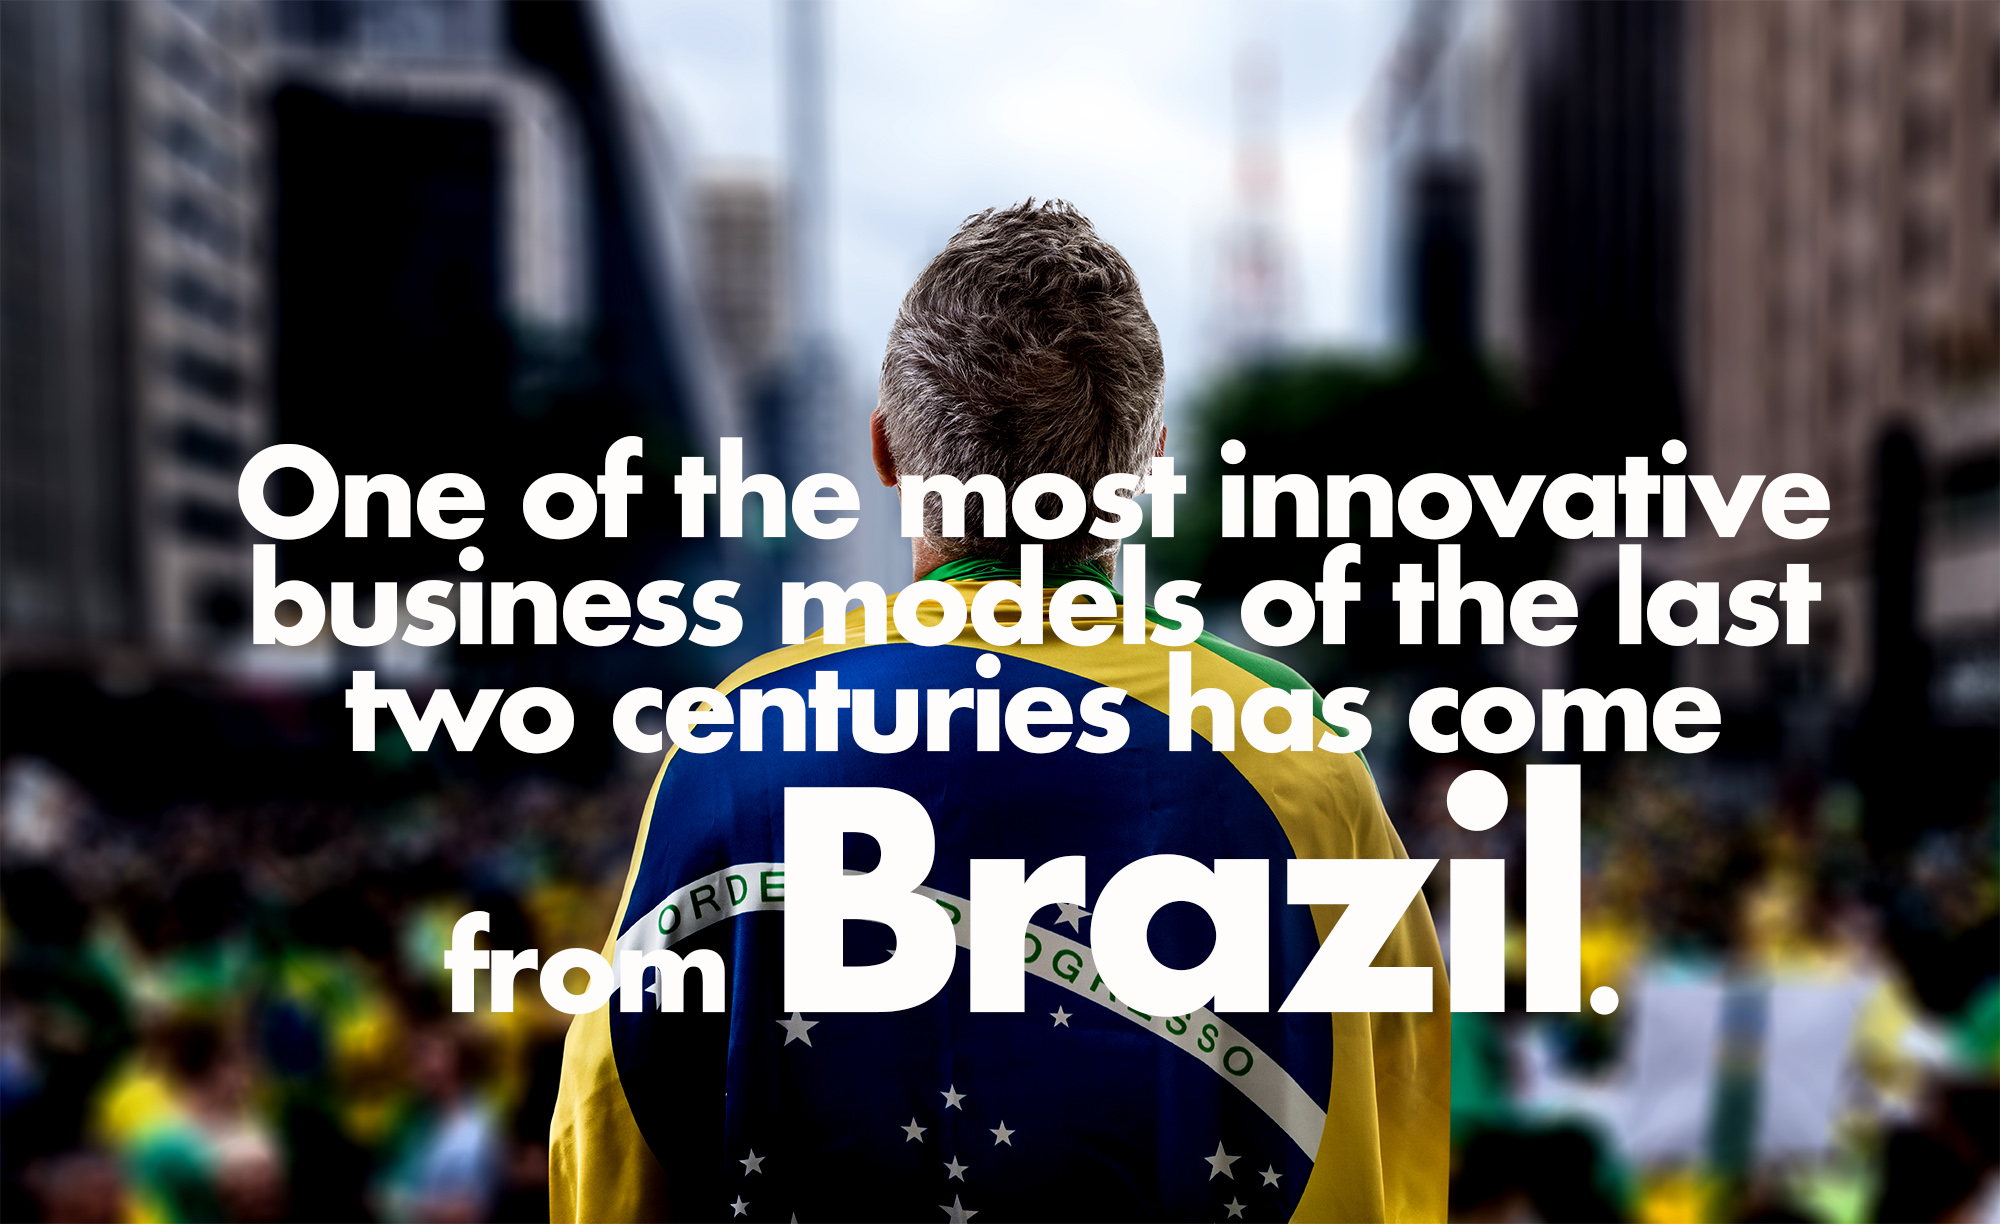 One of the most innovative business models of the last two centuries has come from Brazil